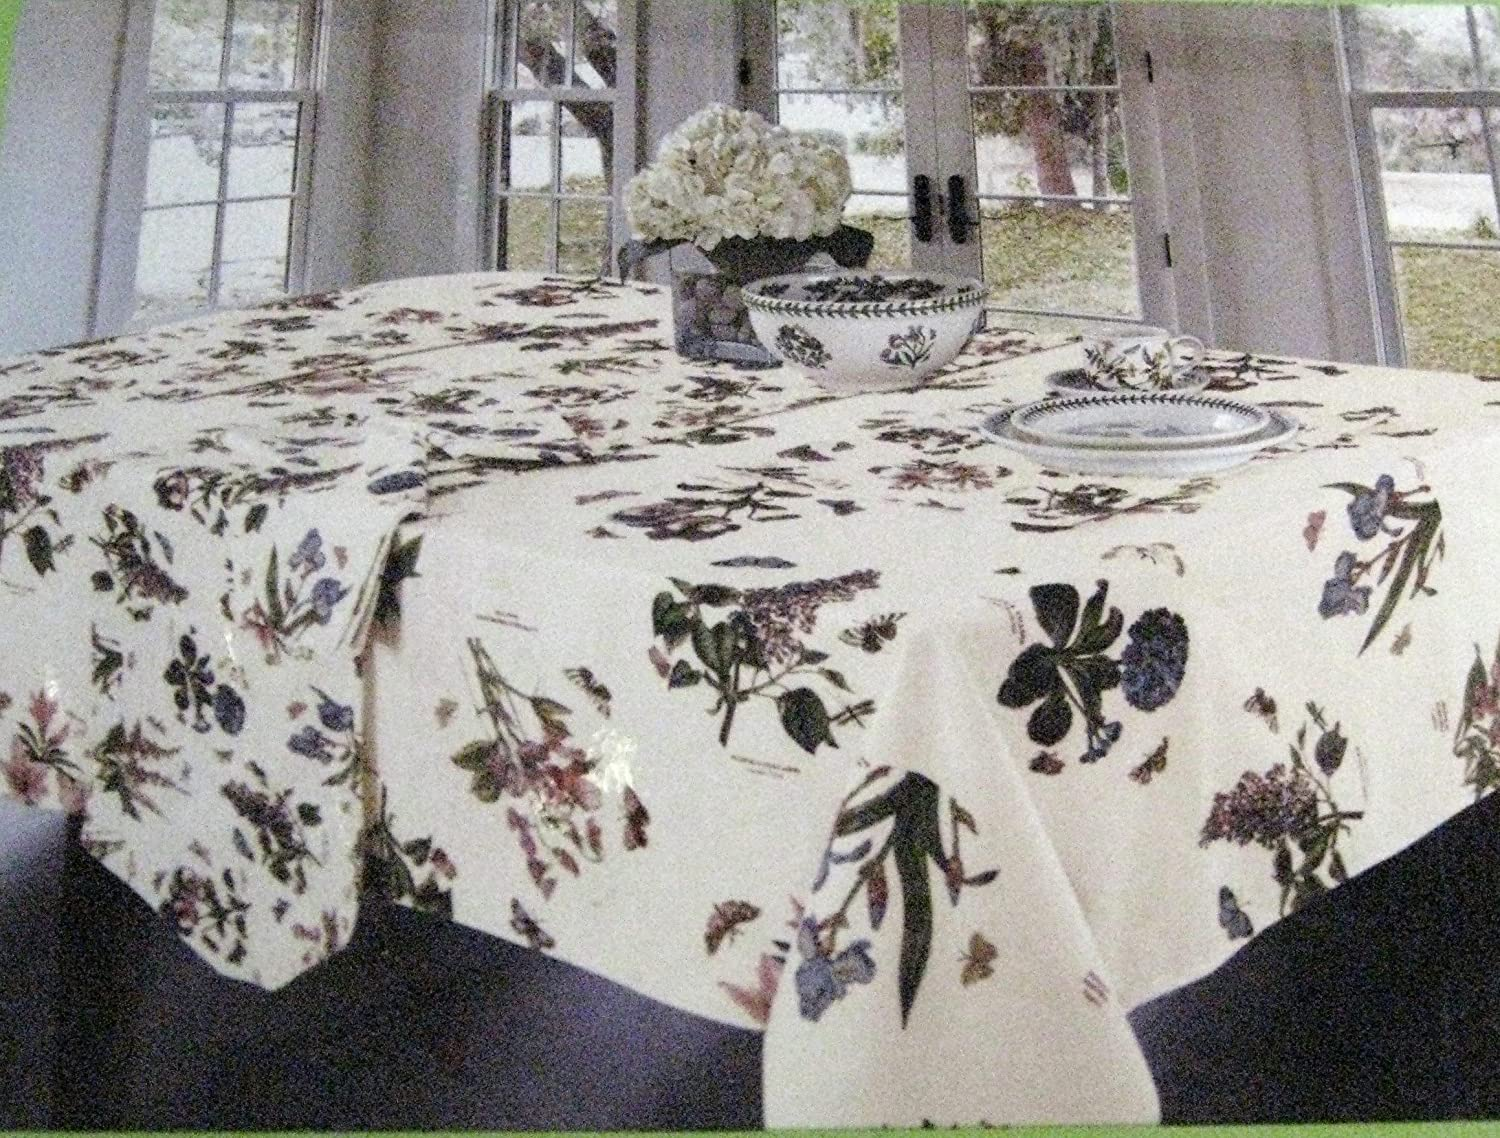 Portmeiron Botanic Garden by Avanti Tablecloths-Assorted Sizes-Oblong/Oval and Round (70 Round)